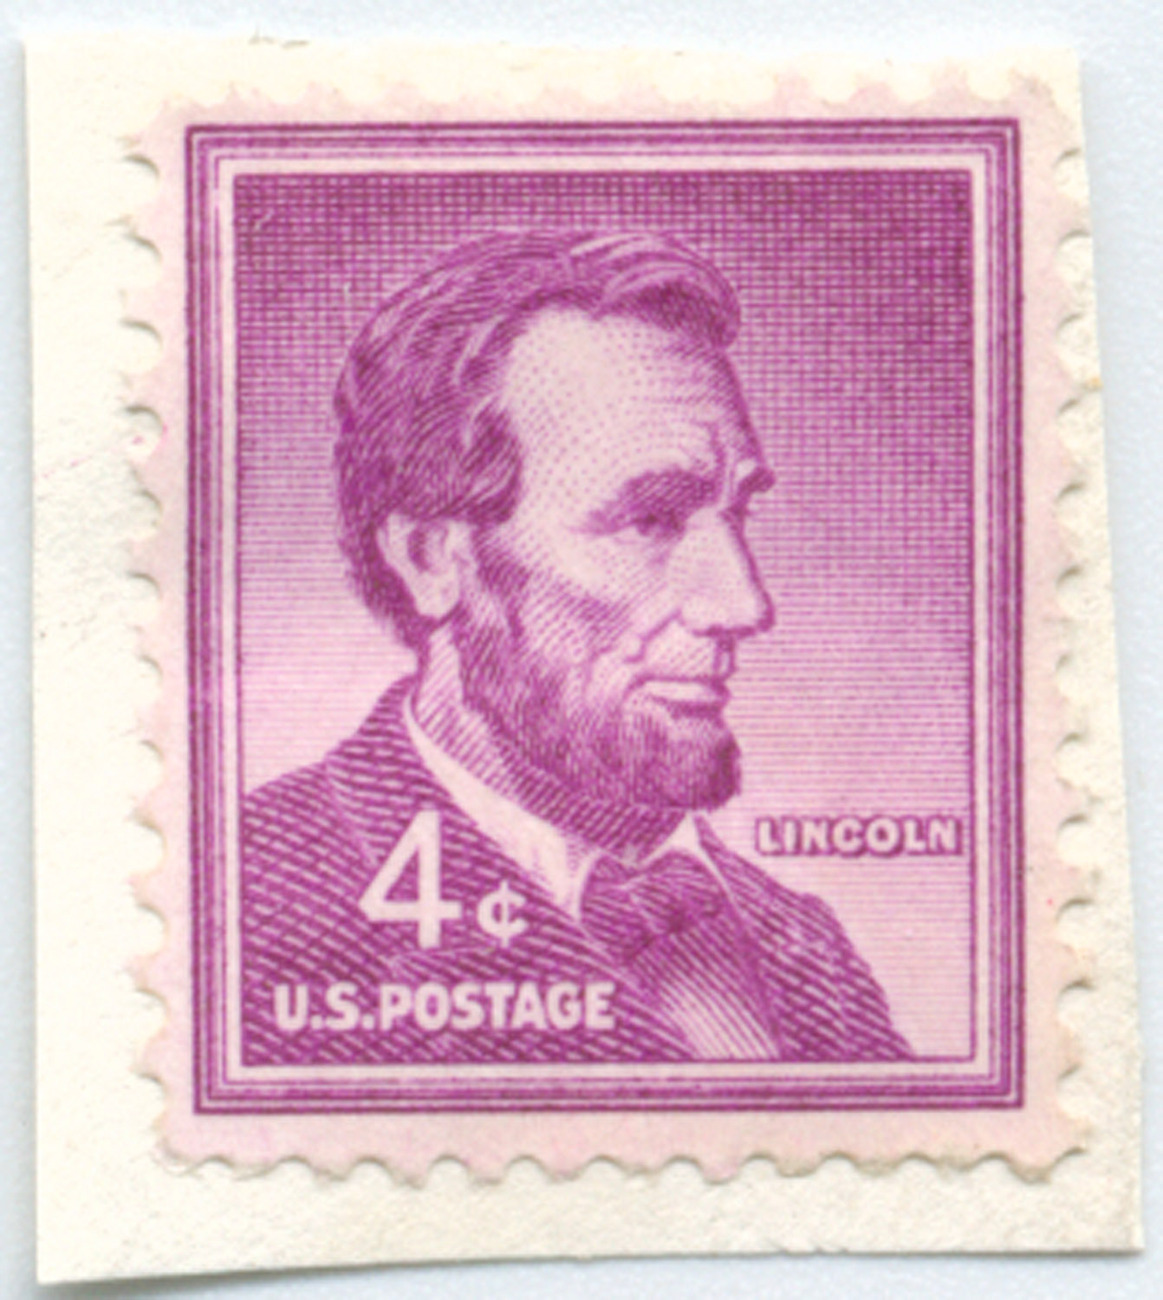 S36_-_4_cent_lincoln